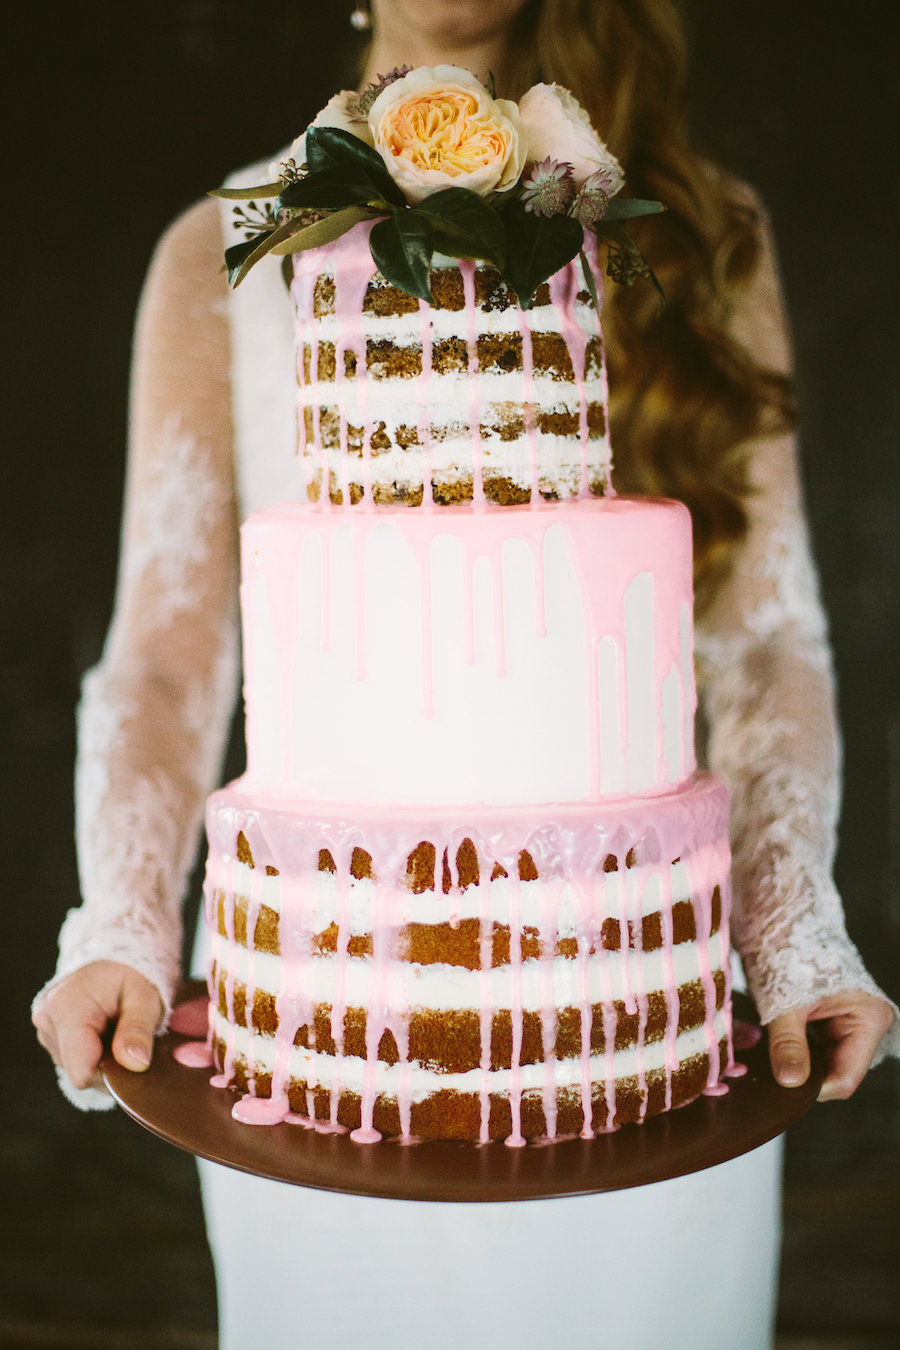 Bride in Long Sleeve Lace Isabel O'Neil Bridal Collection Wedding Dress Holding Three Tiered Round Naked Wedding Cake with Dripping Pink Icing and Fresh Rose Floral Cake Topper | Tampa Bay Wedding Planner Isabel O'Neil Bridal Collection